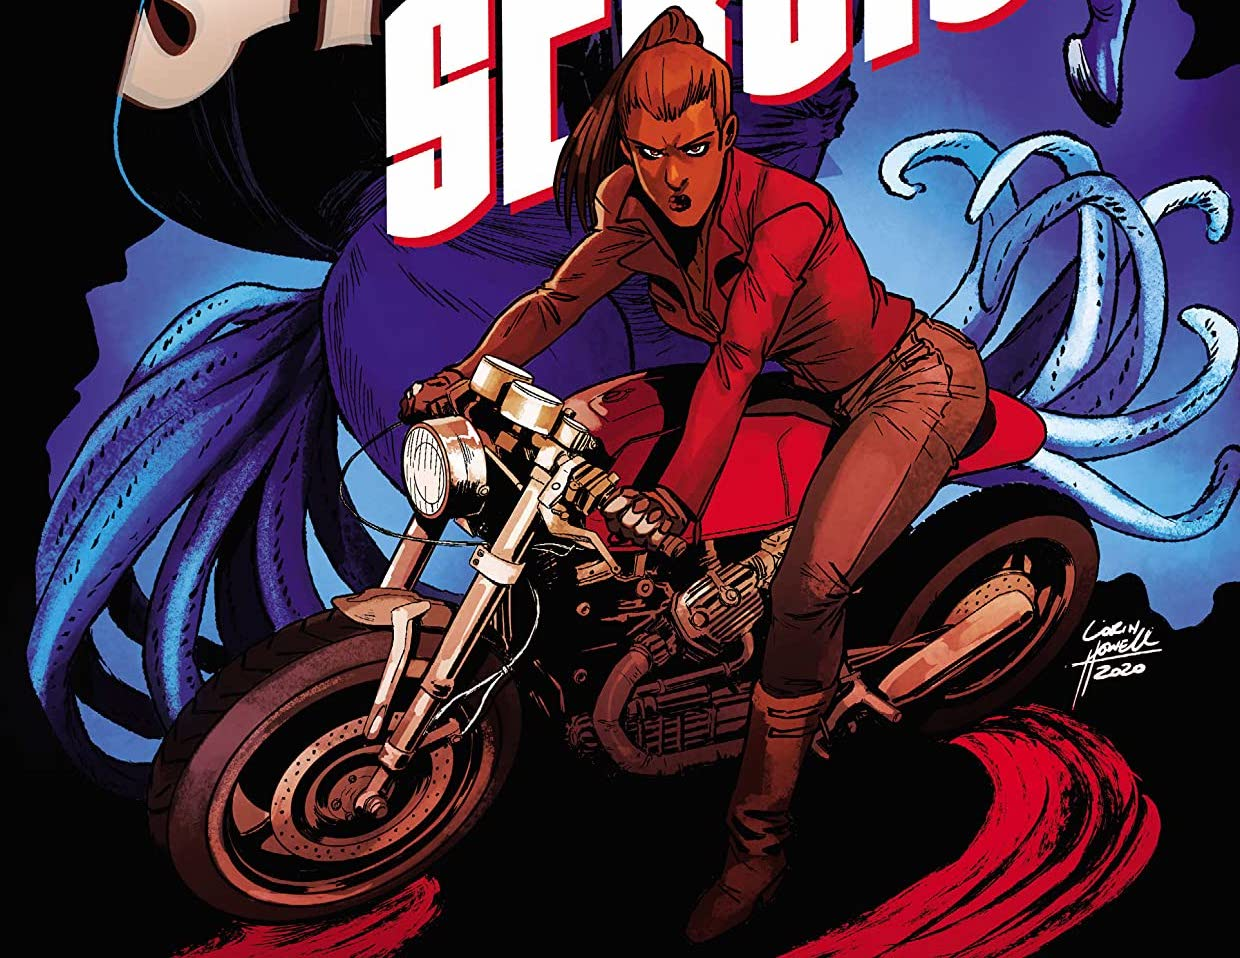 'Shadow Service' #6 races into a new arc